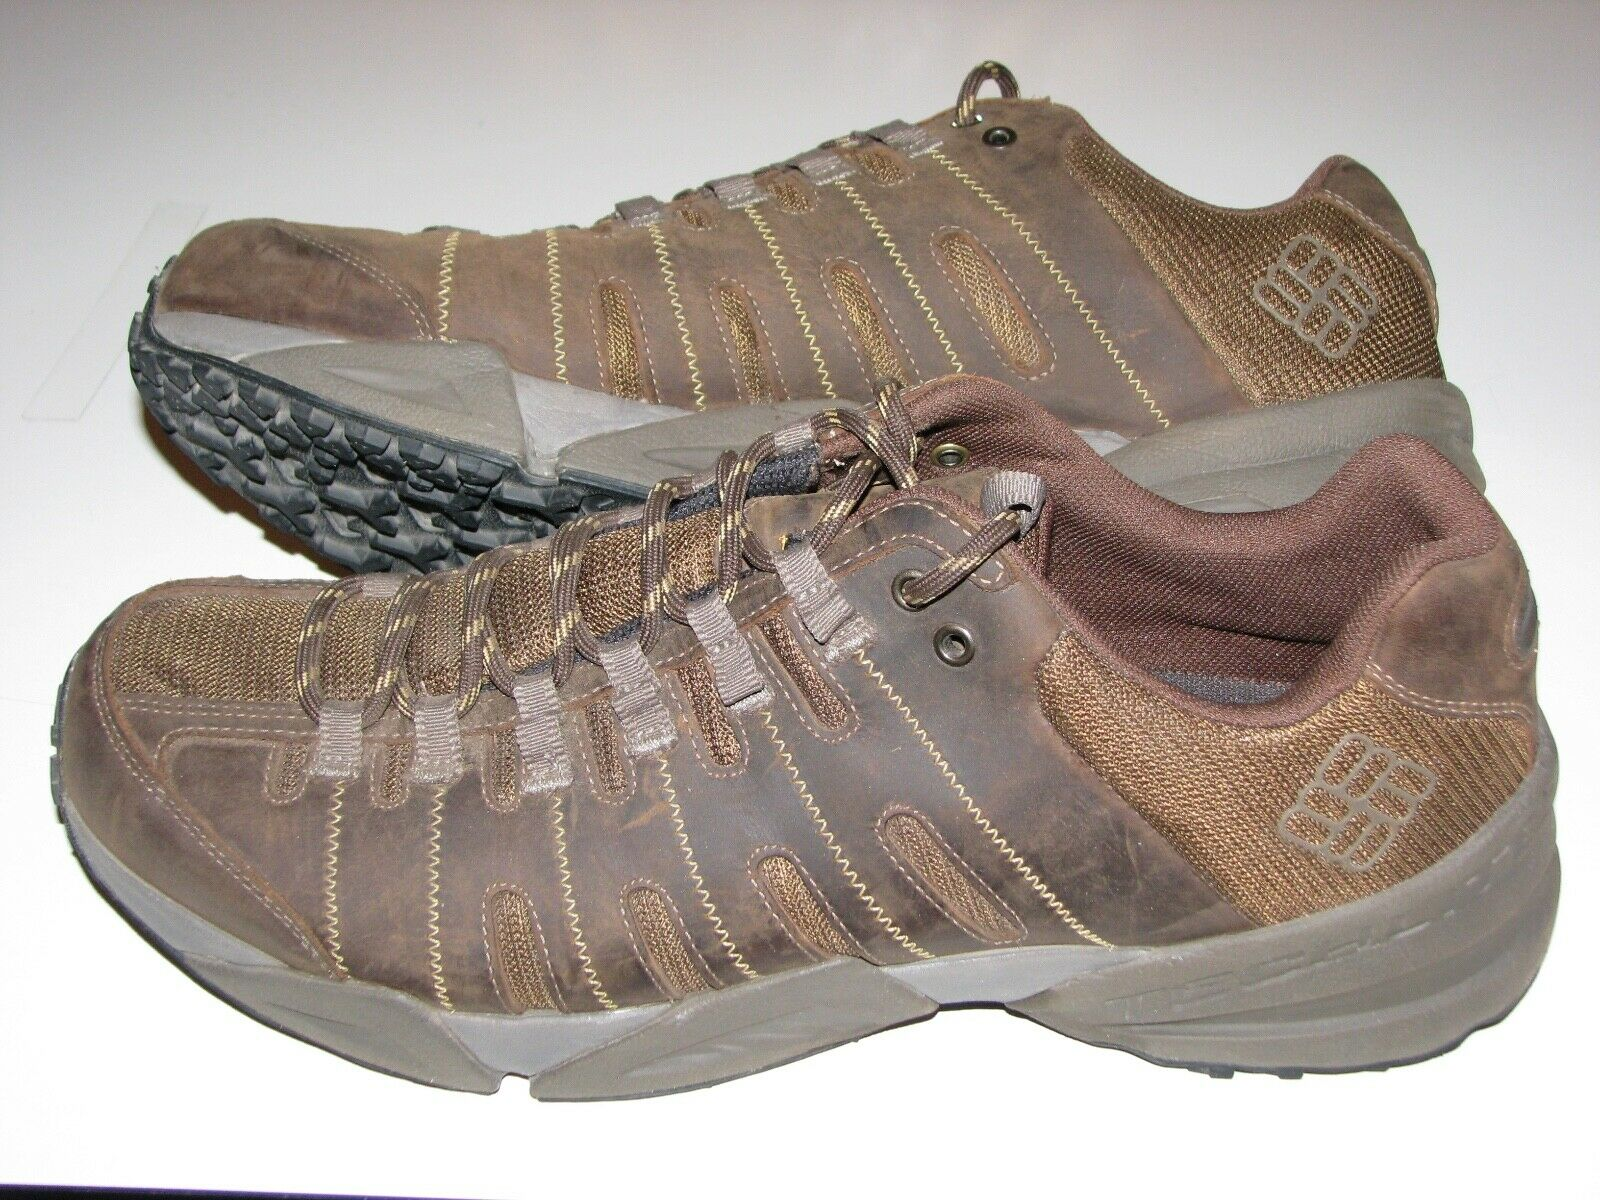 Columbia Master of Faste Trail Hiking shoes sz 15M